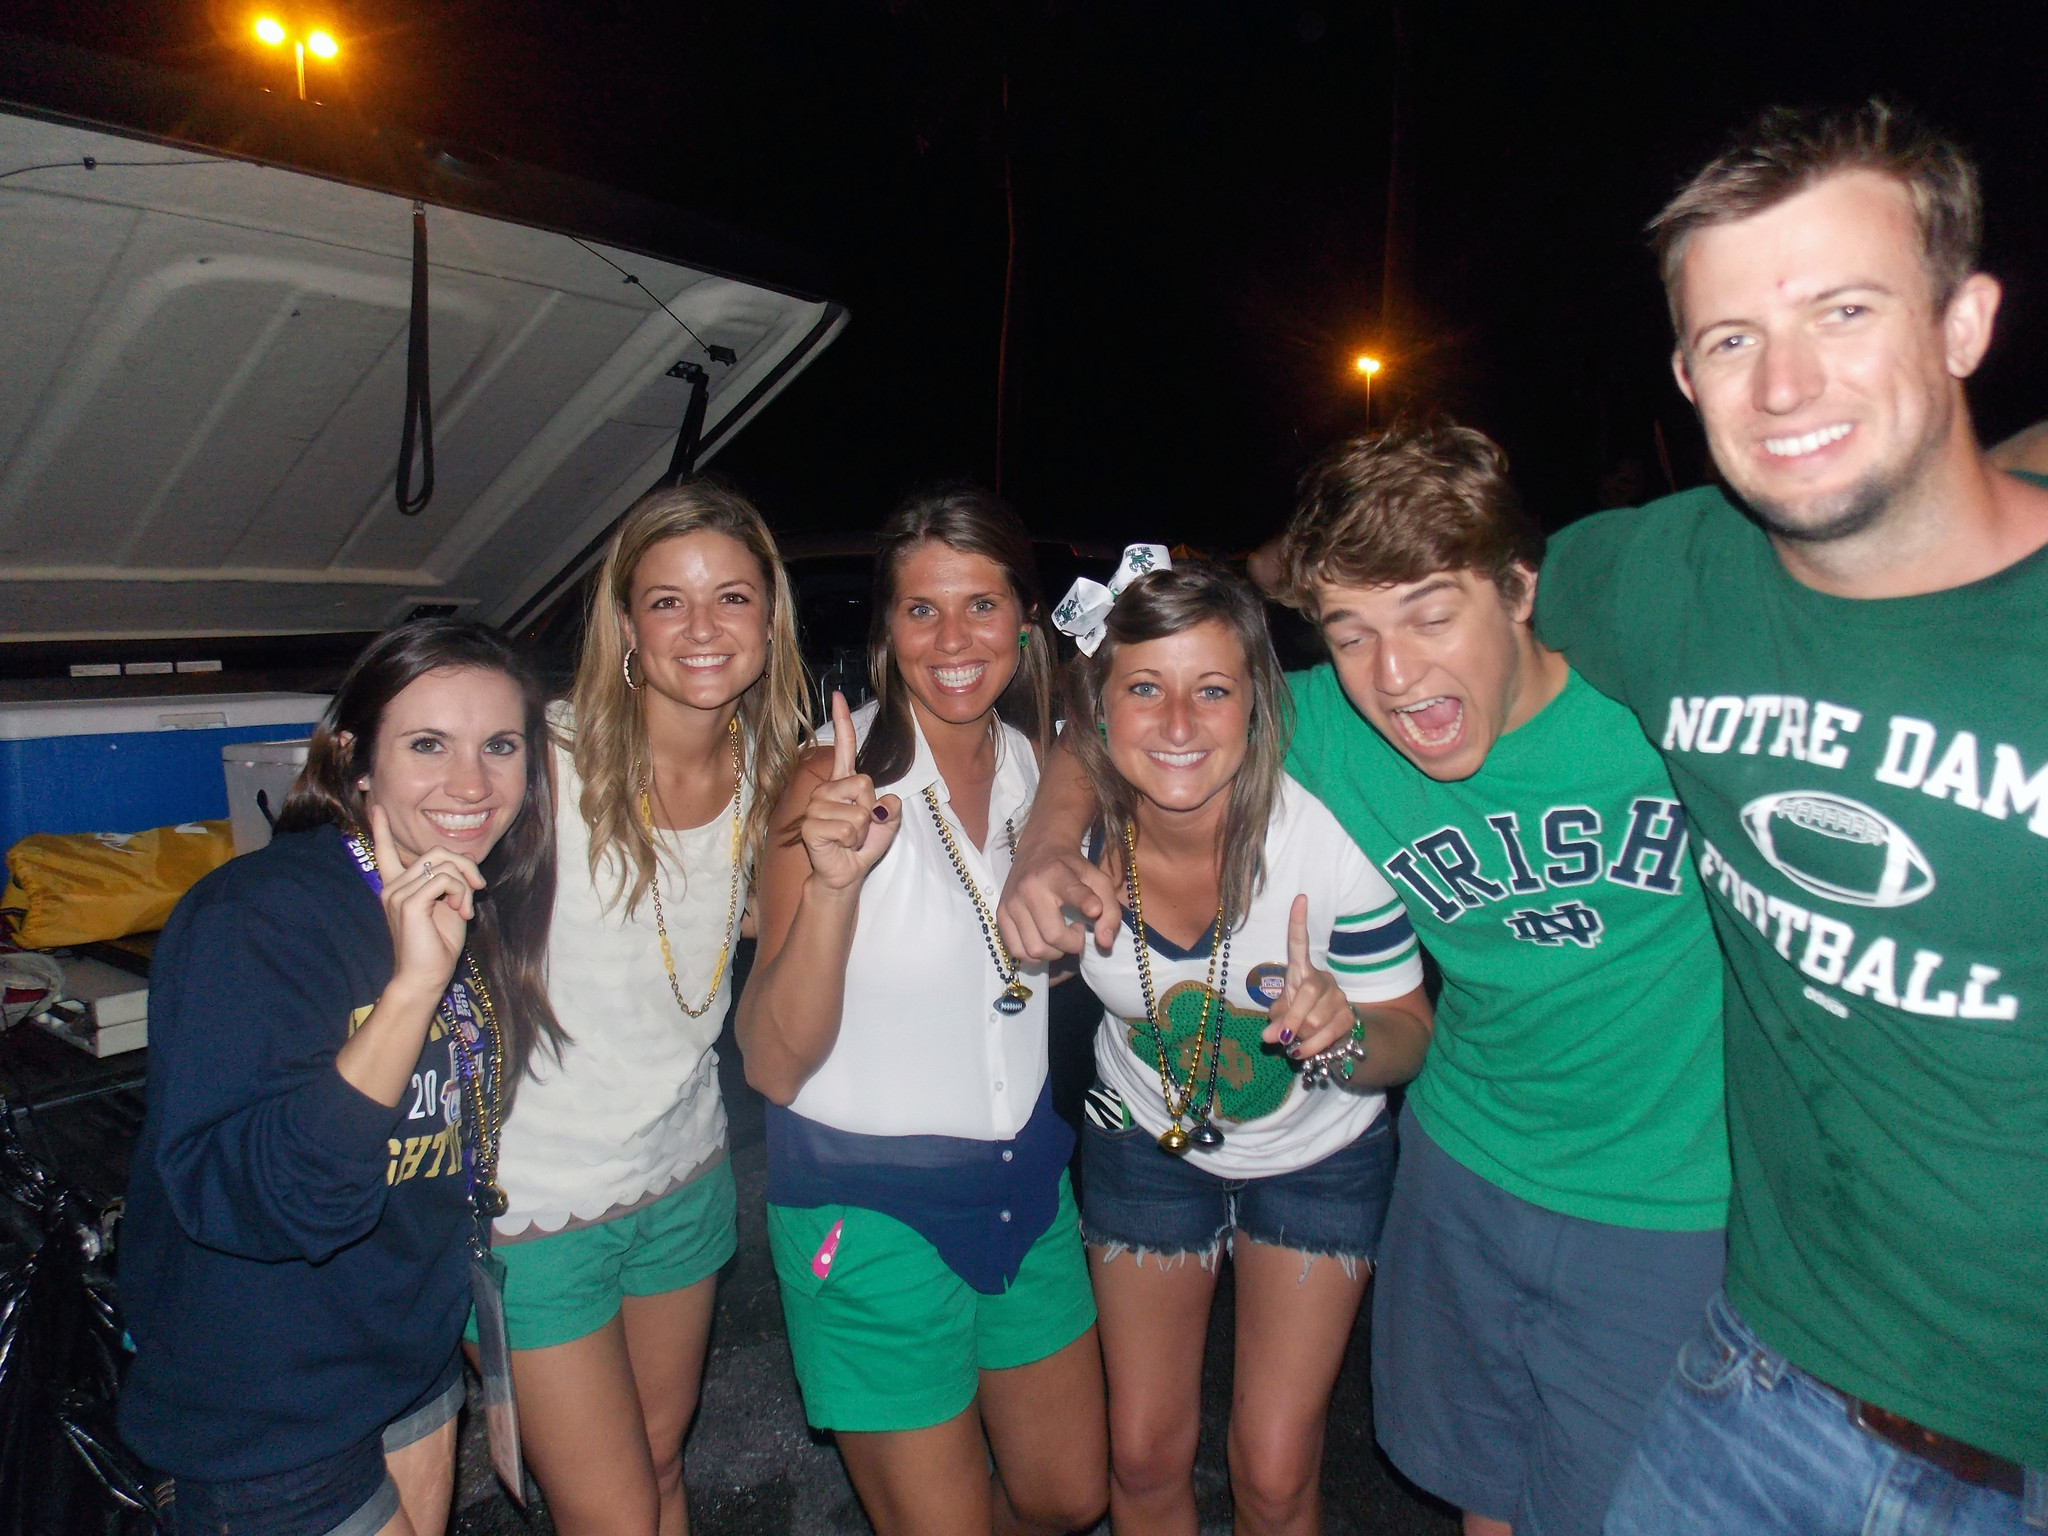 <b>Photos:</b> Tailgating BCS fans - Tailgaiting madness